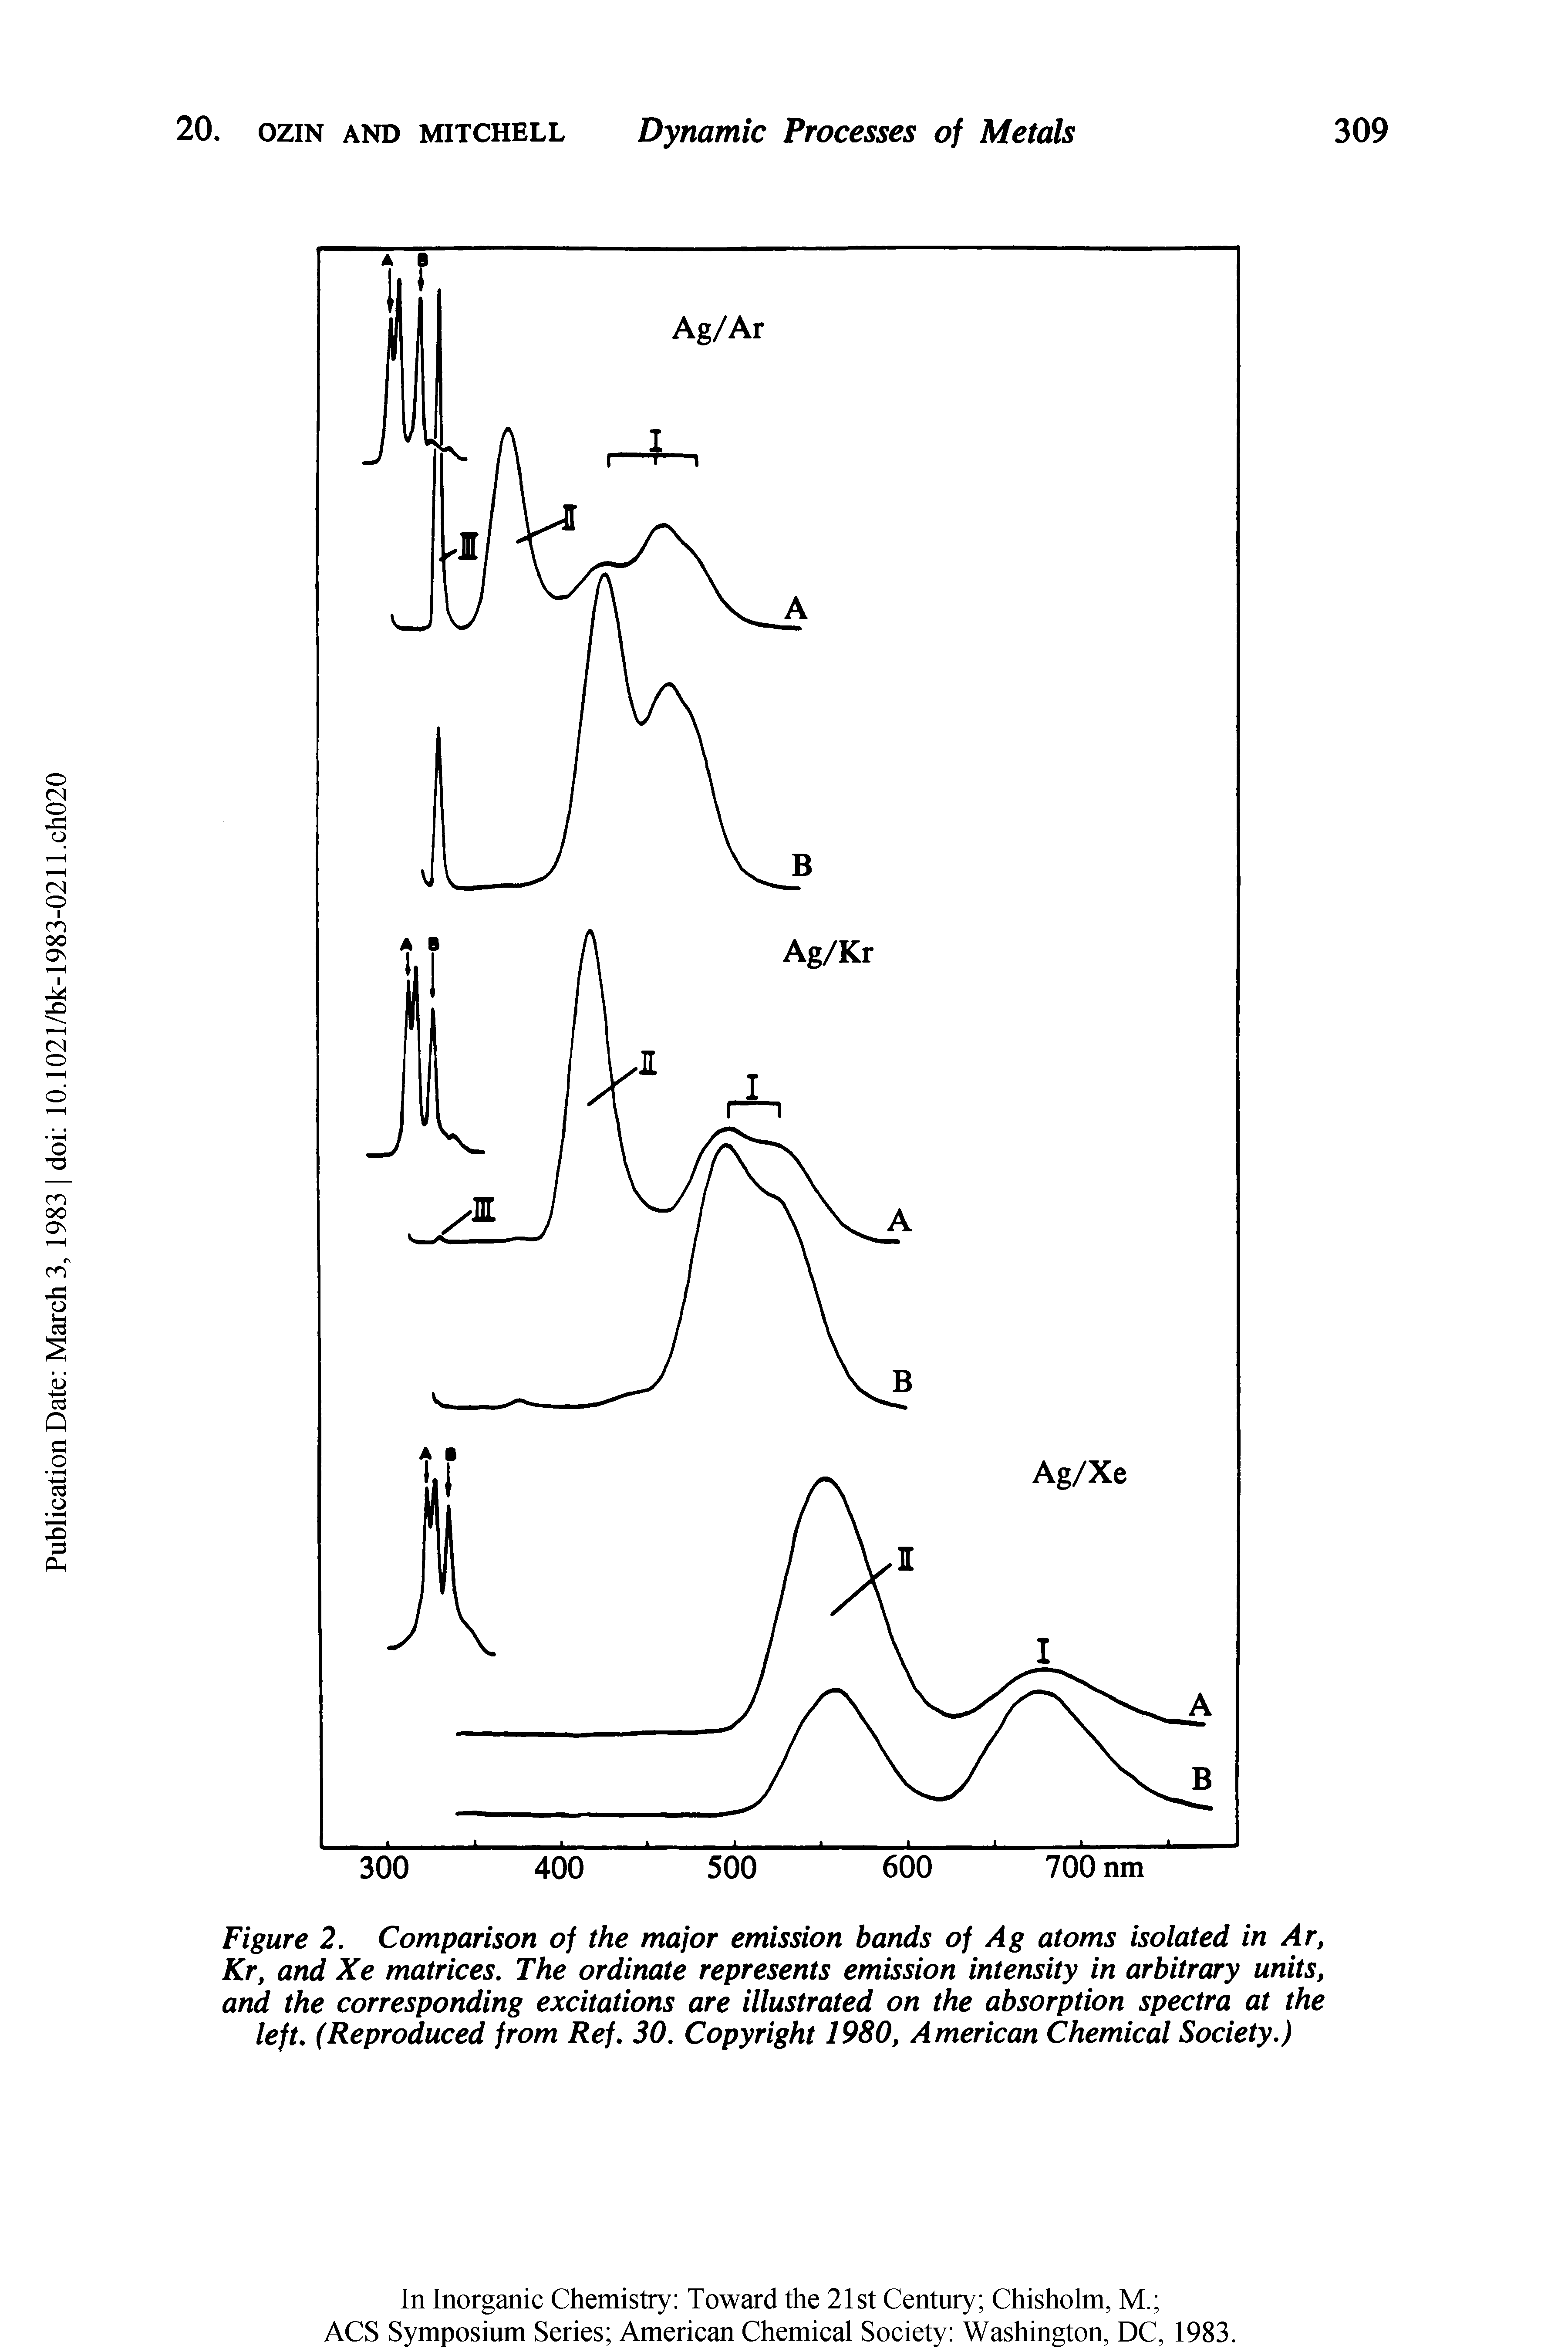 Figure 2. Comparison of the major emission bands of Ag atoms isolated in Ar, Kr, and Xe matrices. The ordinate represents emission intensity in arbitrary units, and the corresponding excitations are illustrated on the absorption spectra at the left. (Reproduced from Ref. 30. Copyright 1980, American Chemical Society.)...